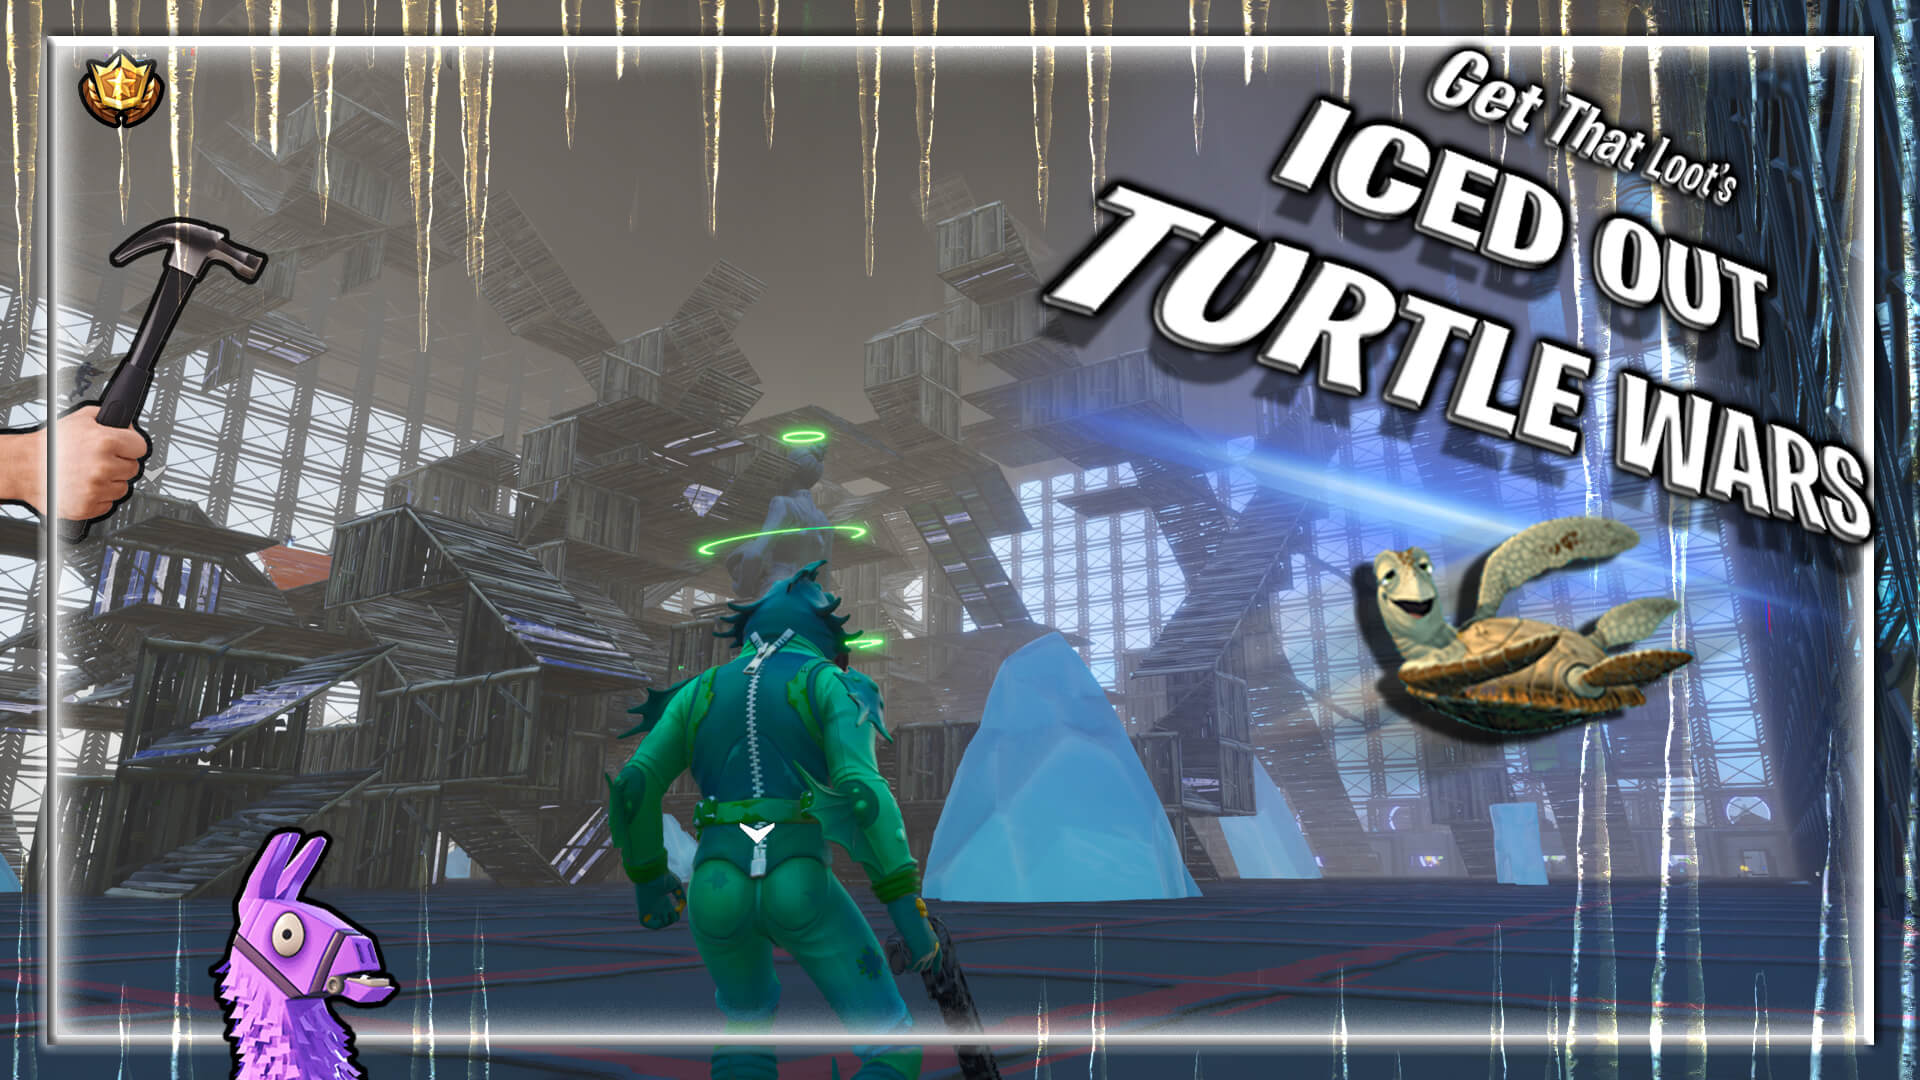 [ ICED OUT ] TURTLE WARS!